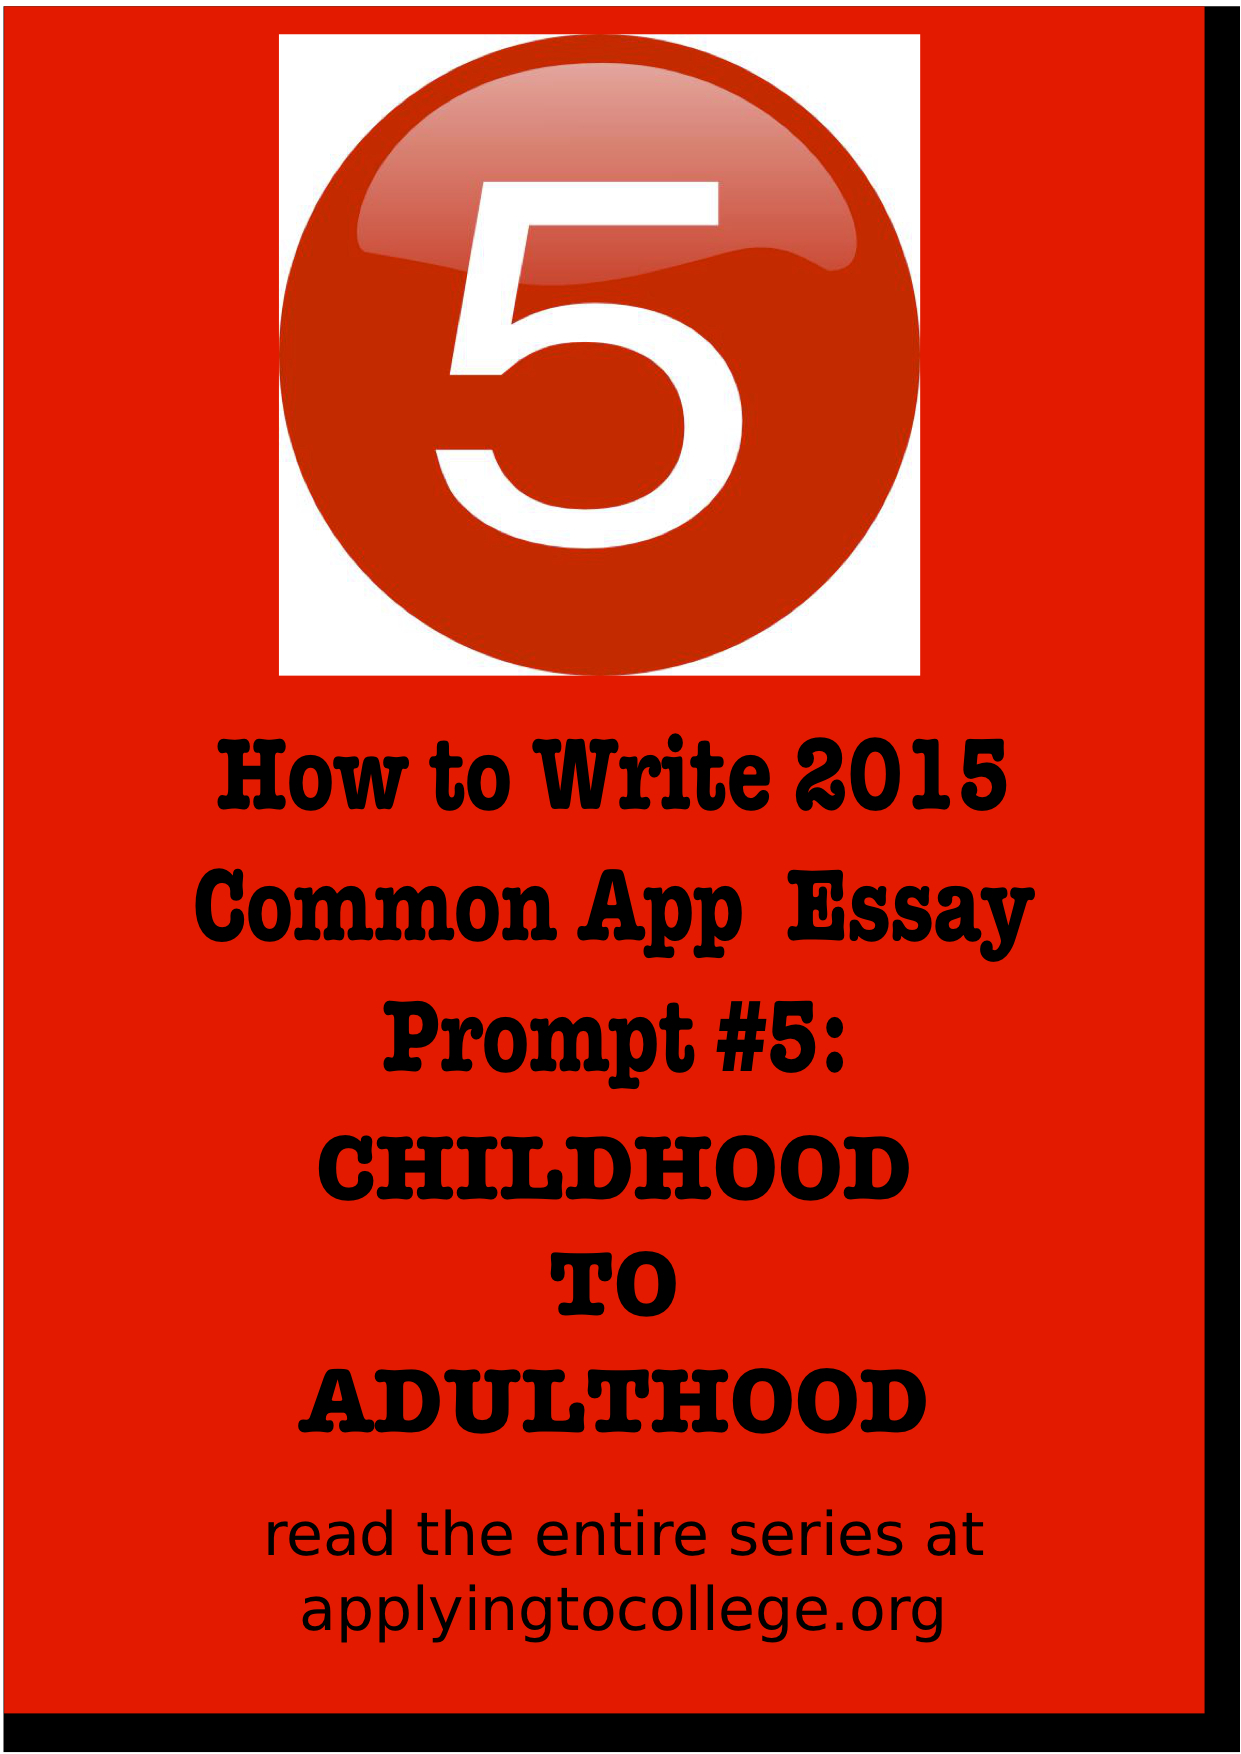 discuss an accomplishment or event formal or informal that marked how to write 2015 common application essay 5 transition from childhood to adulthood